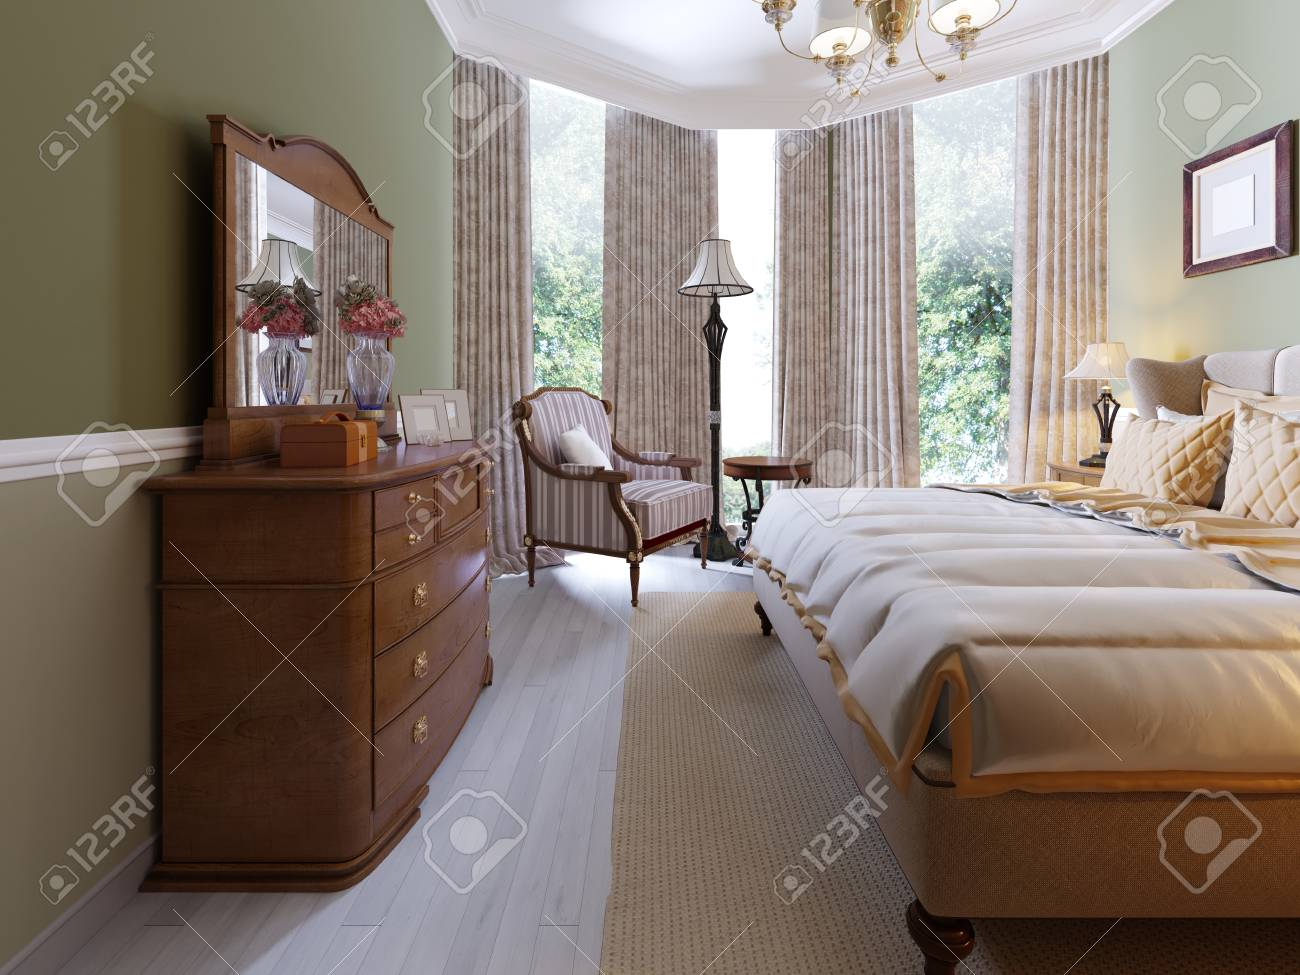 Modern Classic Traditional Bedroom Interior Design with olive..